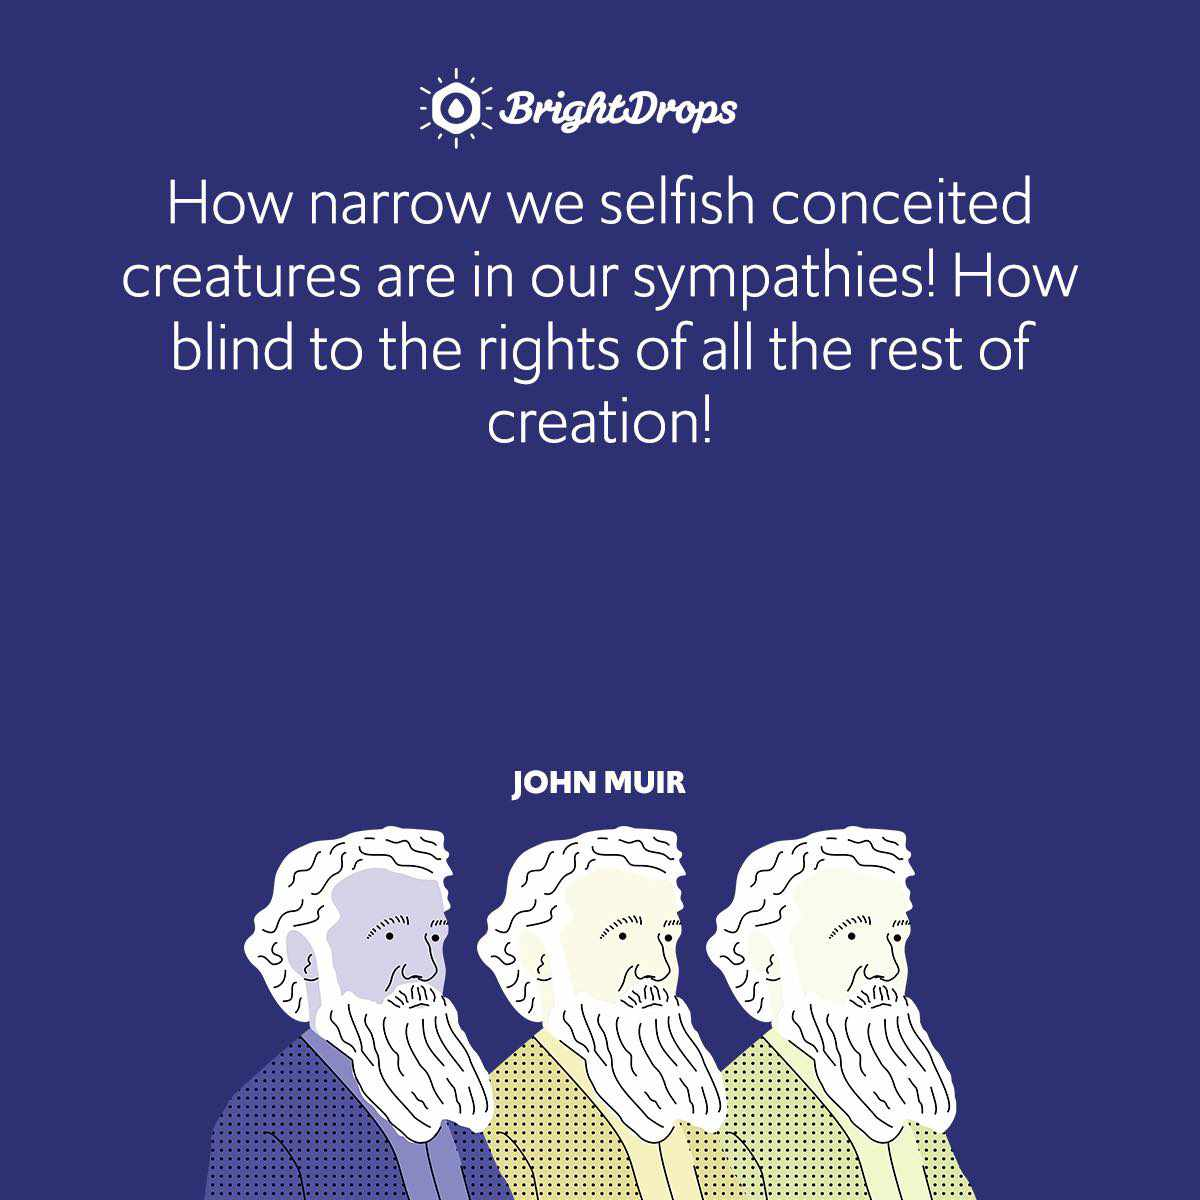 How narrow we selfish conceited creatures are in our sympathies! How blind to the rights of all the rest of creation!